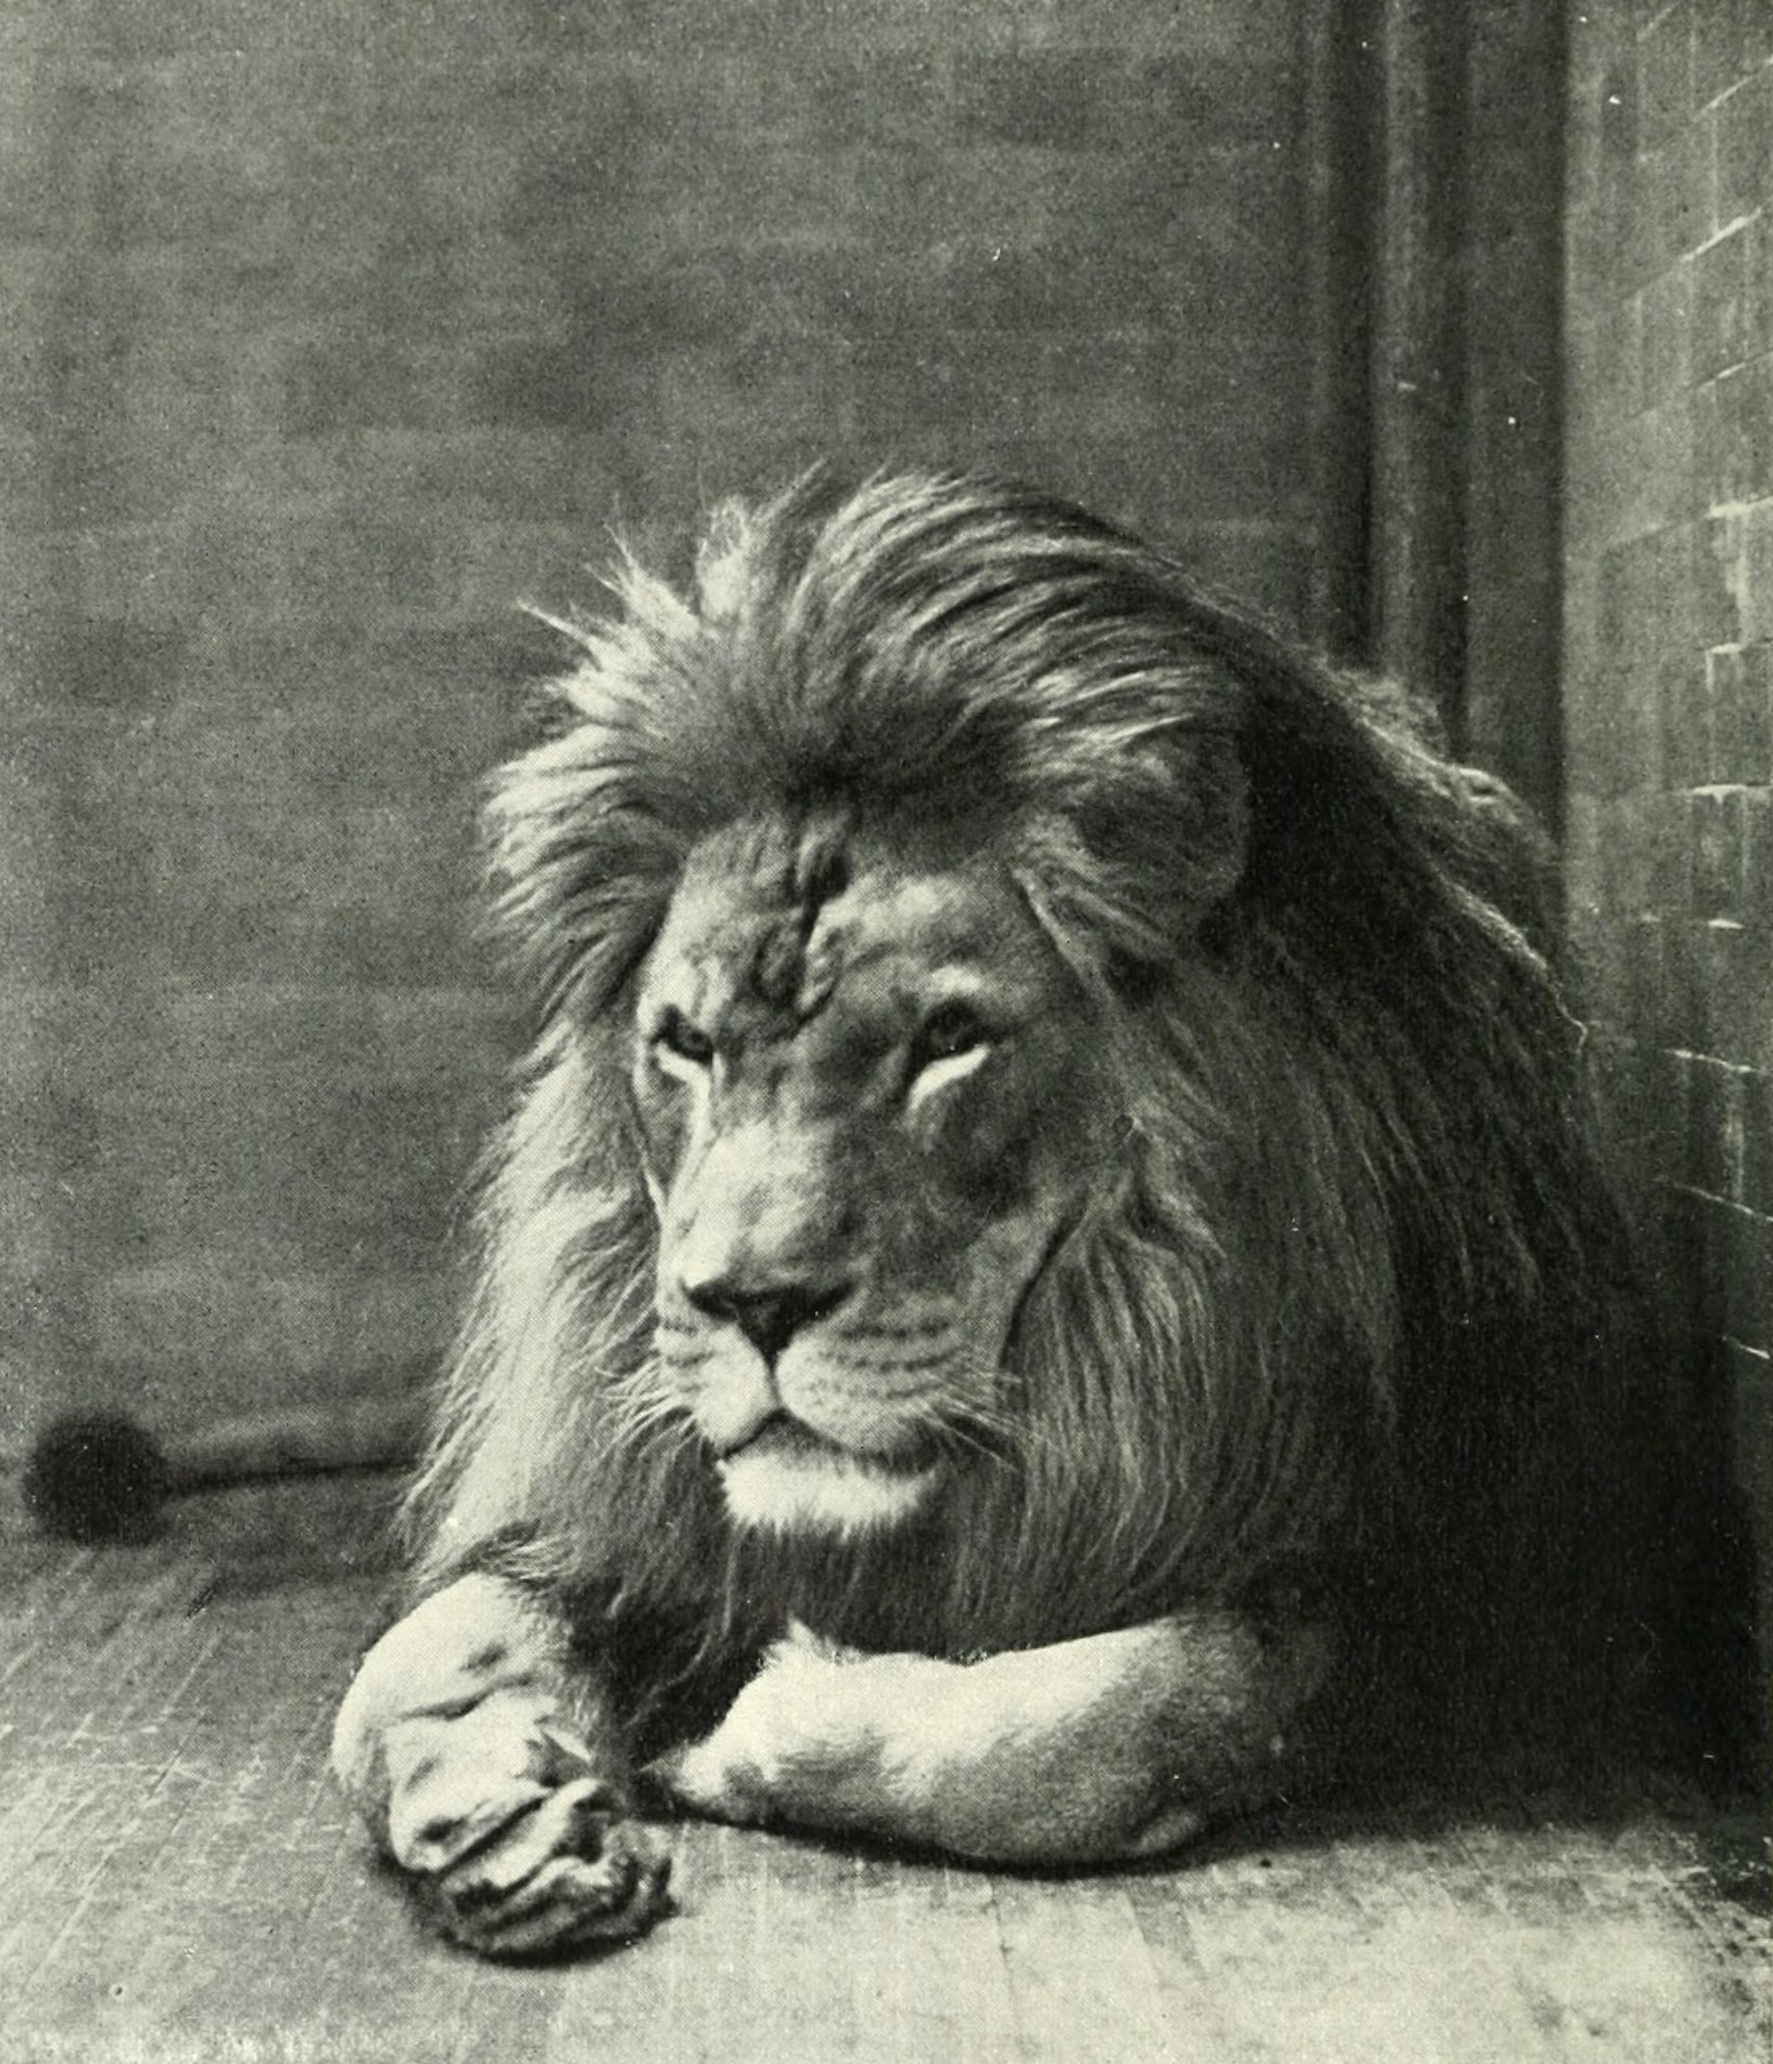 """Sultan the Barbary Lion"" by Nelson Robinson  via Wikimedia Commons"